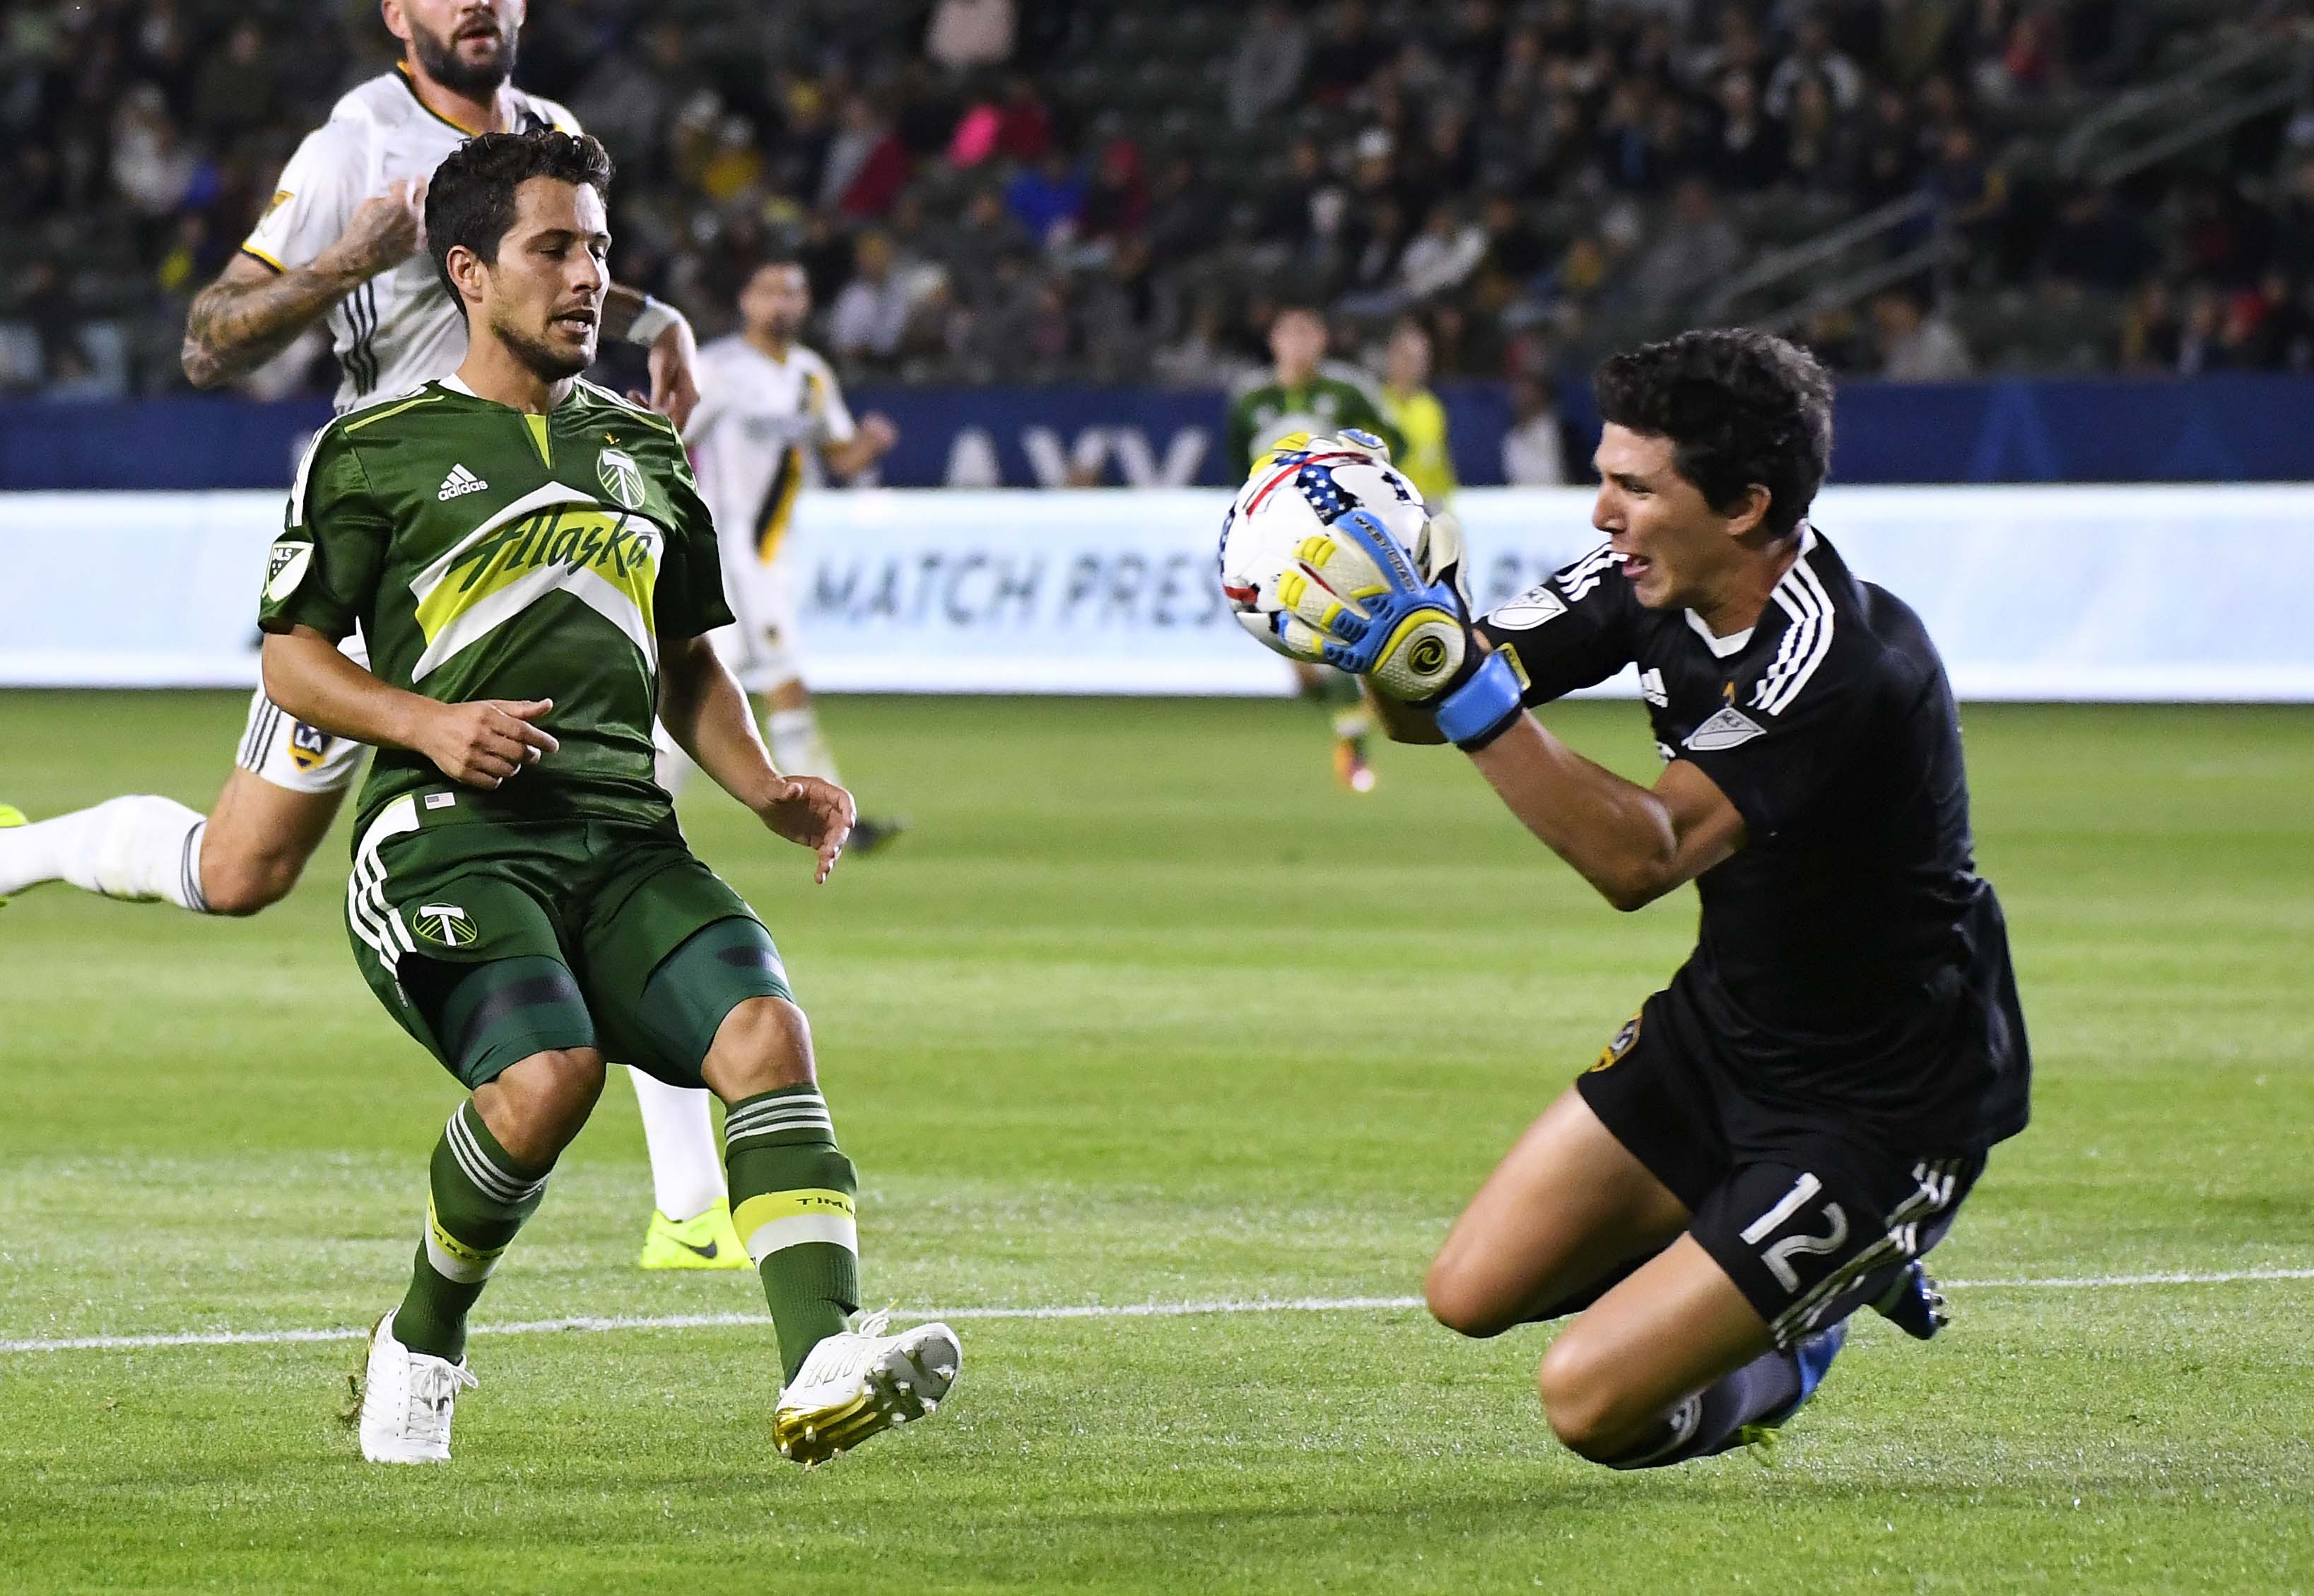 Los Angeles Galaxy goalkeeper Brian Rowe, right, stops a shot by Portland Timbers midfielder Sebastian Blanco during the first half of a preseason MLS soccer match in Los Angeles on Saturday.